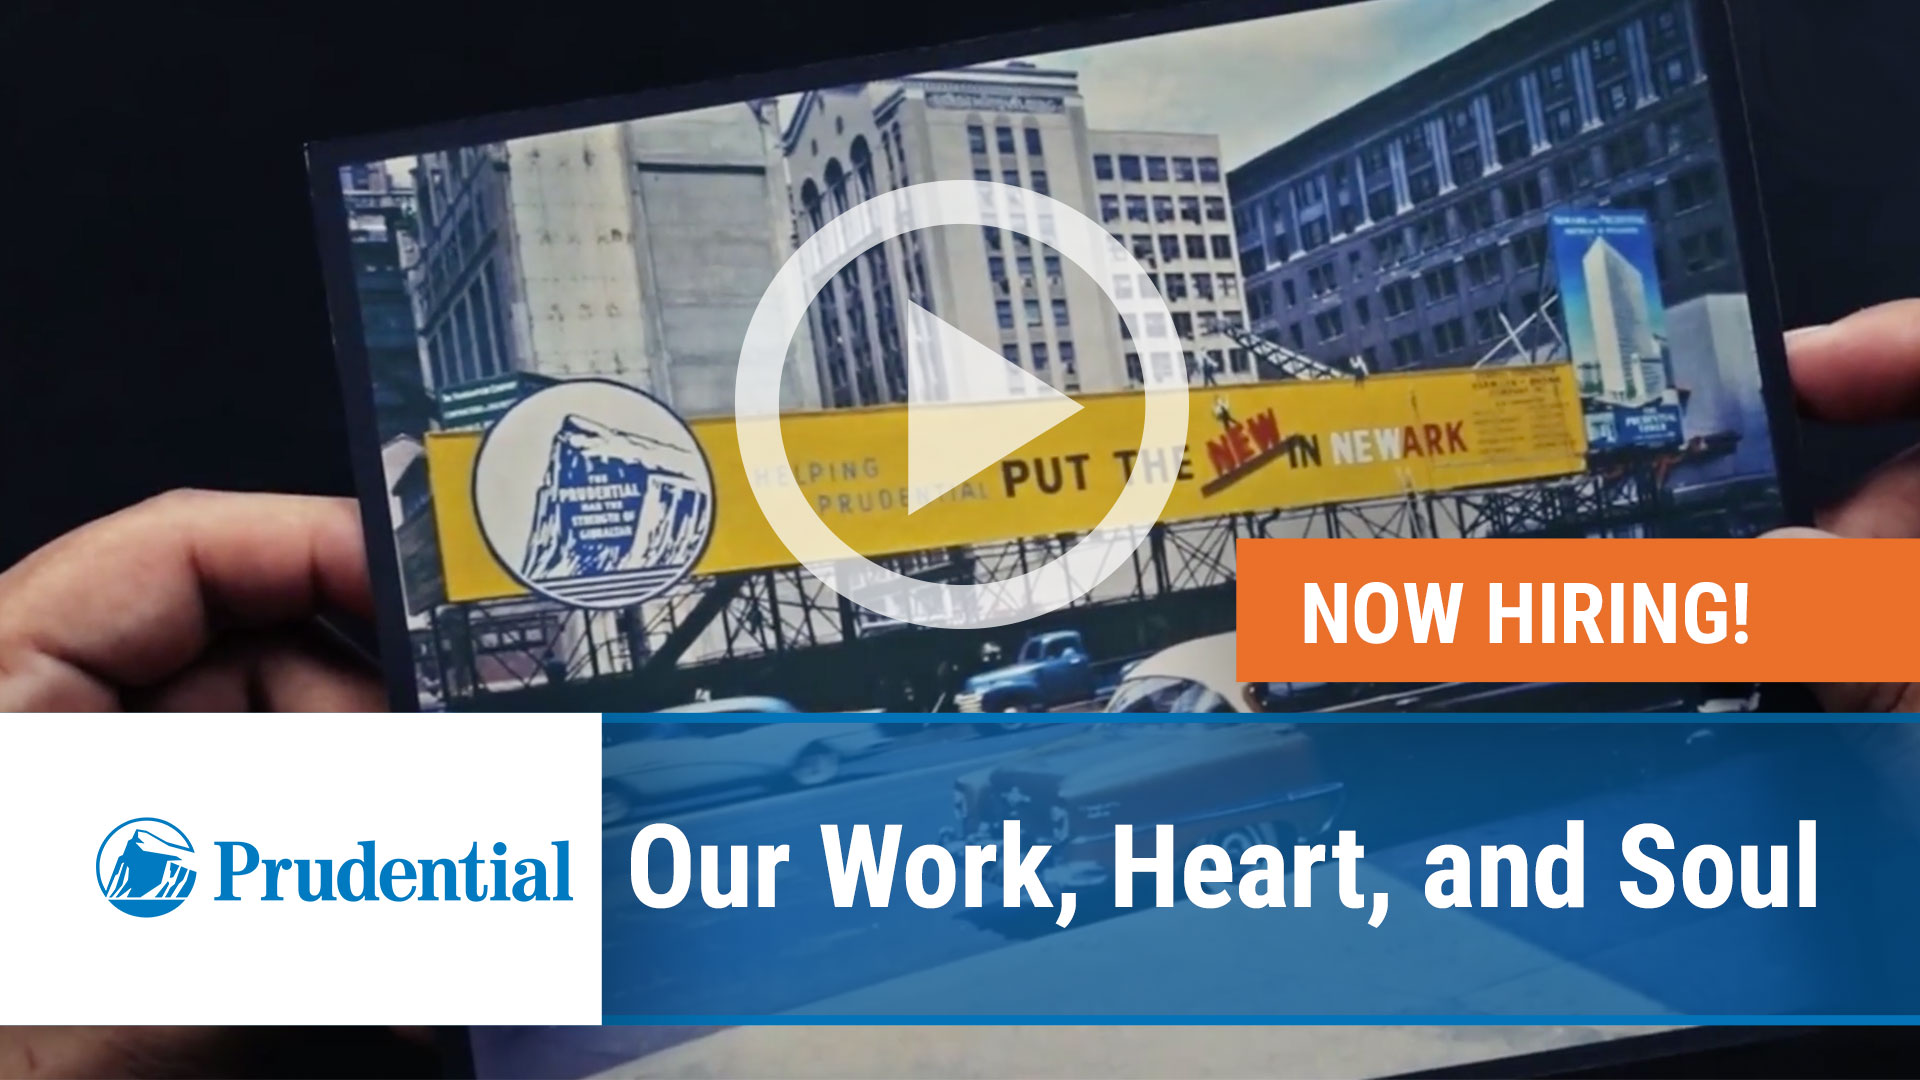 Watch our careers video for available job opening Our Work, Heart, and Soul in Arlington, VA